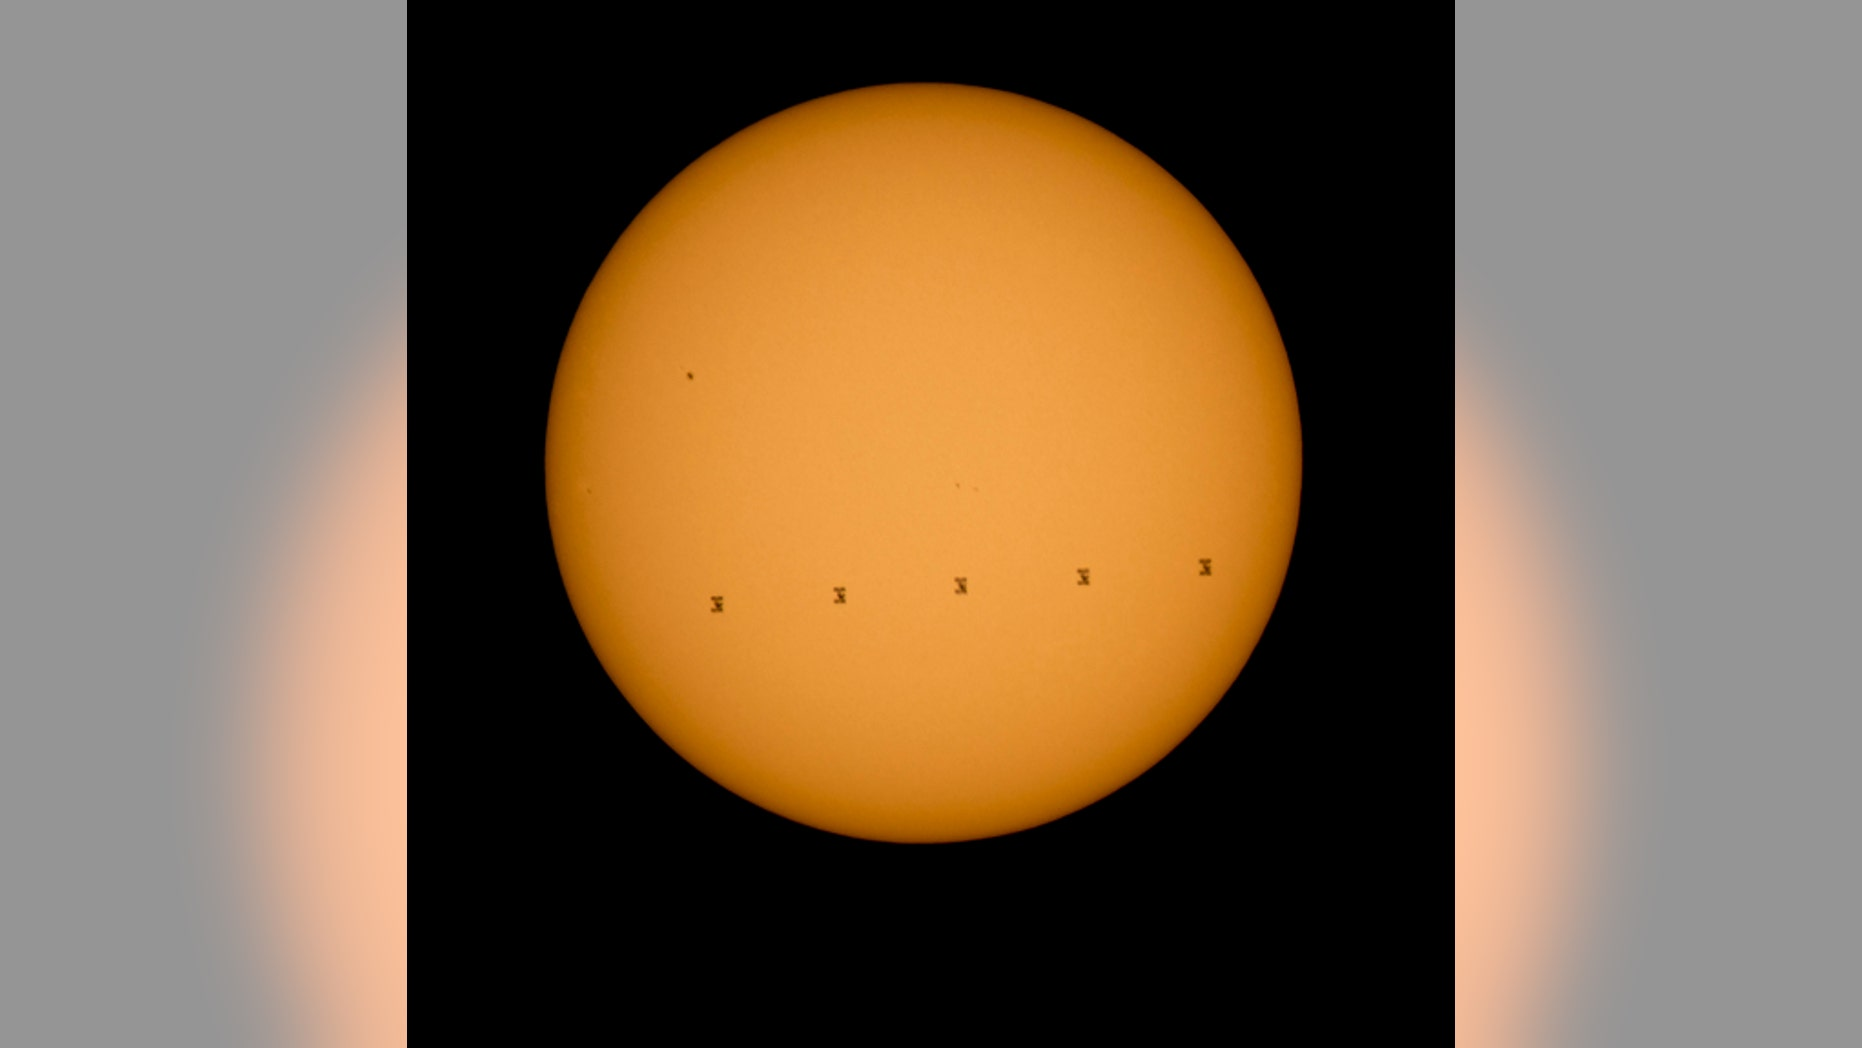 This composite photo made from five images shows the International Space Station crossing the sun's face on Sept. 6, 2015. The images were captured from Shenandoah National Park in Virginia.